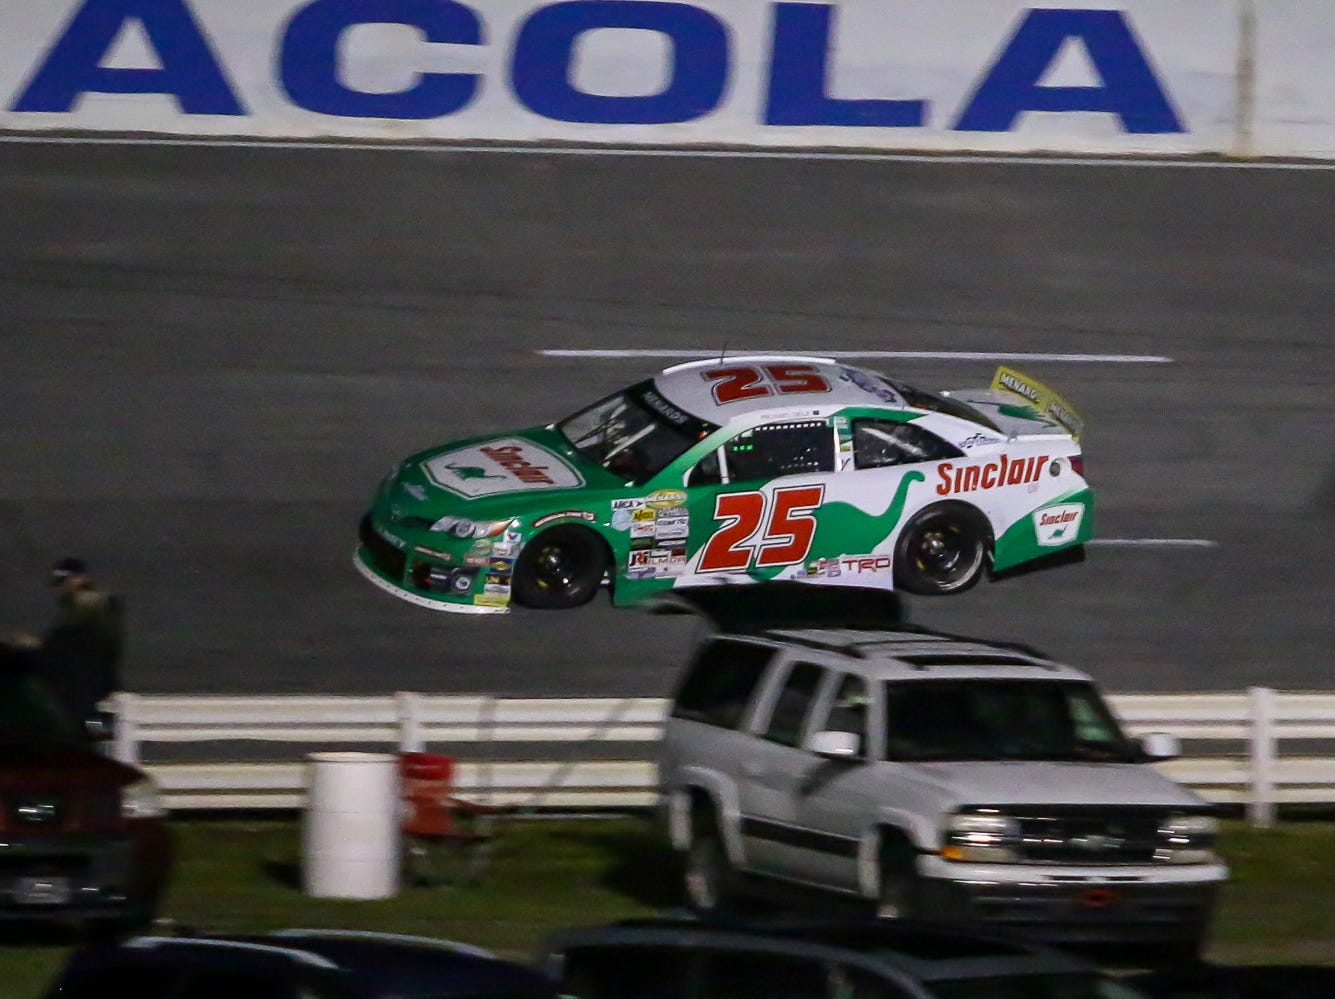 Michael Self (25) makes his way around the track during the ARCA Pensacola 200 race presented by Inspectra Thermal Solutions on Saturday, March 9, 2019, at Five Flags Speedway. He started the race in the number two position and went on to win the race.